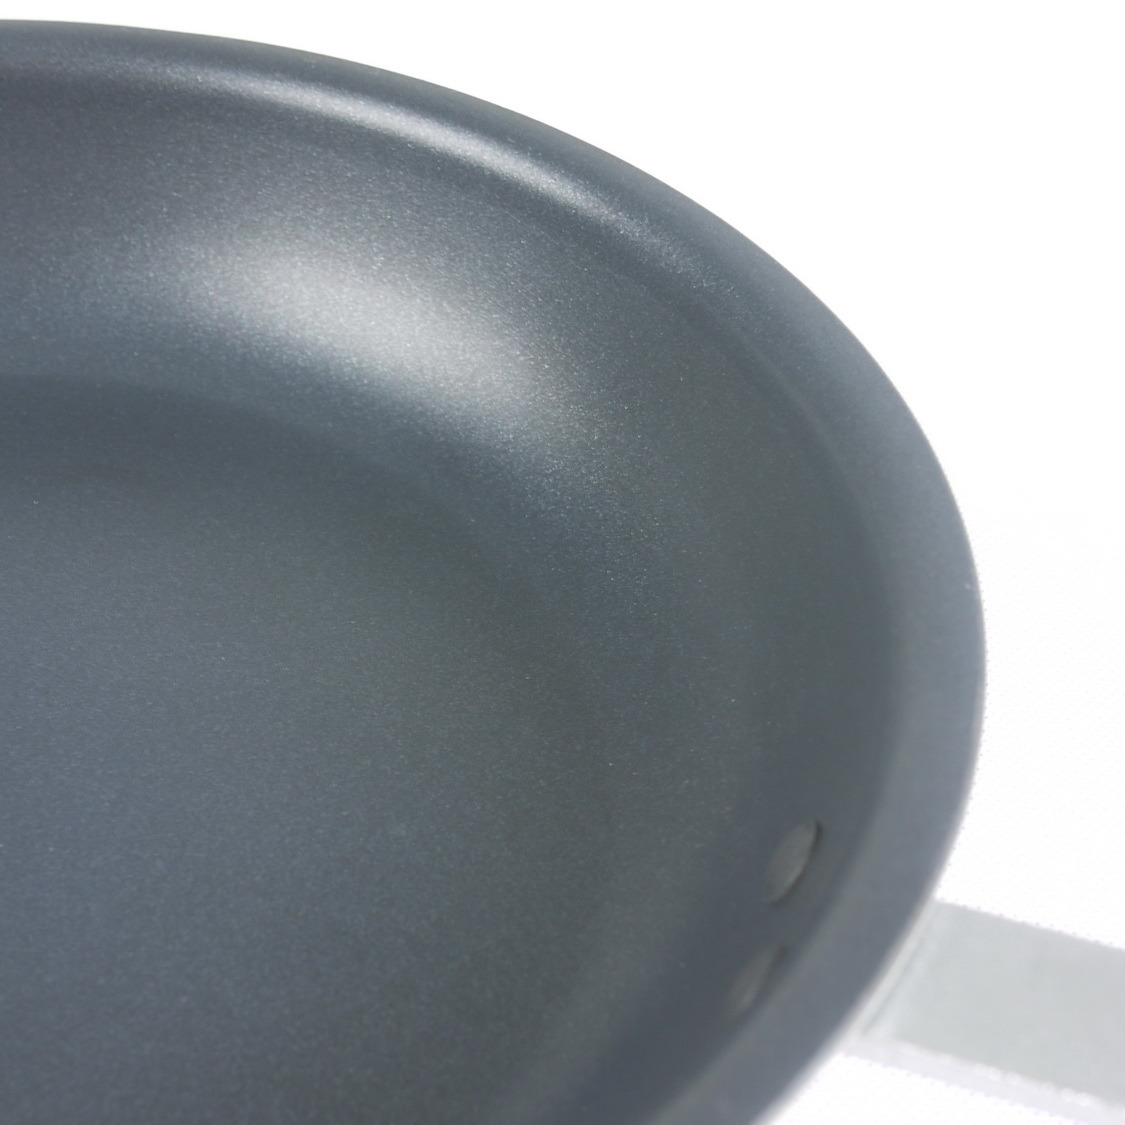 Commercial 10 Inch Dupont Teflon Coating Non-Stick Frying